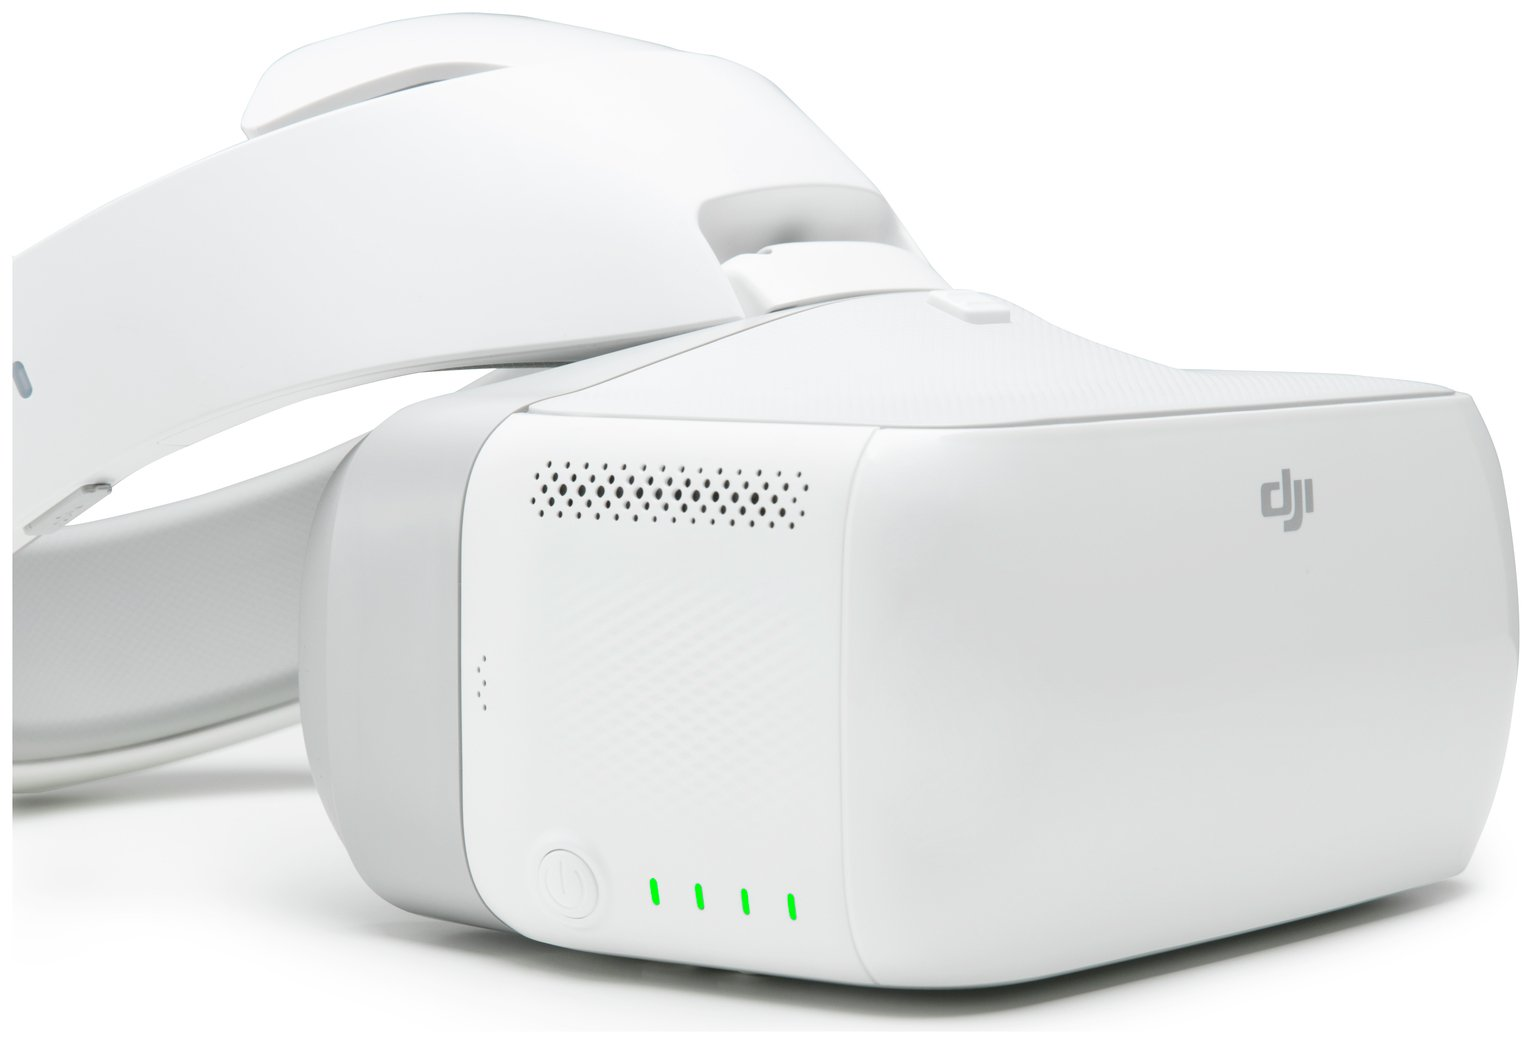 DJI Goggles Virtual Reality Drone Headset review